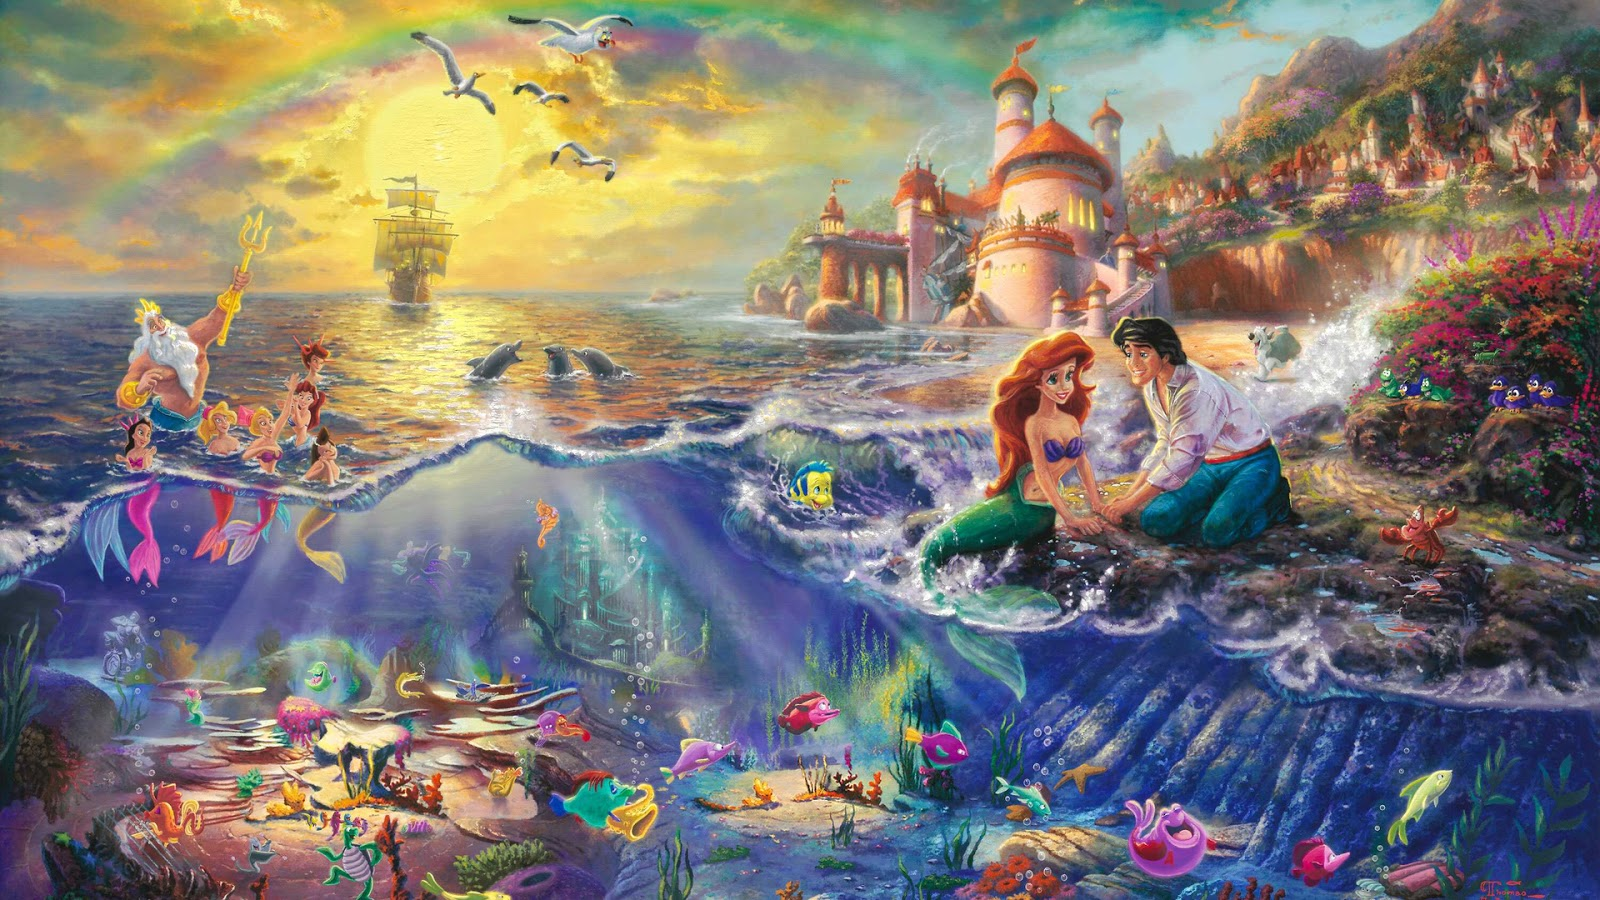 http://4.bp.blogspot.com/-iMILQnPFSWQ/UMJbnbF1OjI/AAAAAAAAJr8/SUeZURBaML0/s1600/the-little-mermaid-wallpaper-thomas-kinkade-painting-walt-disney.jpg